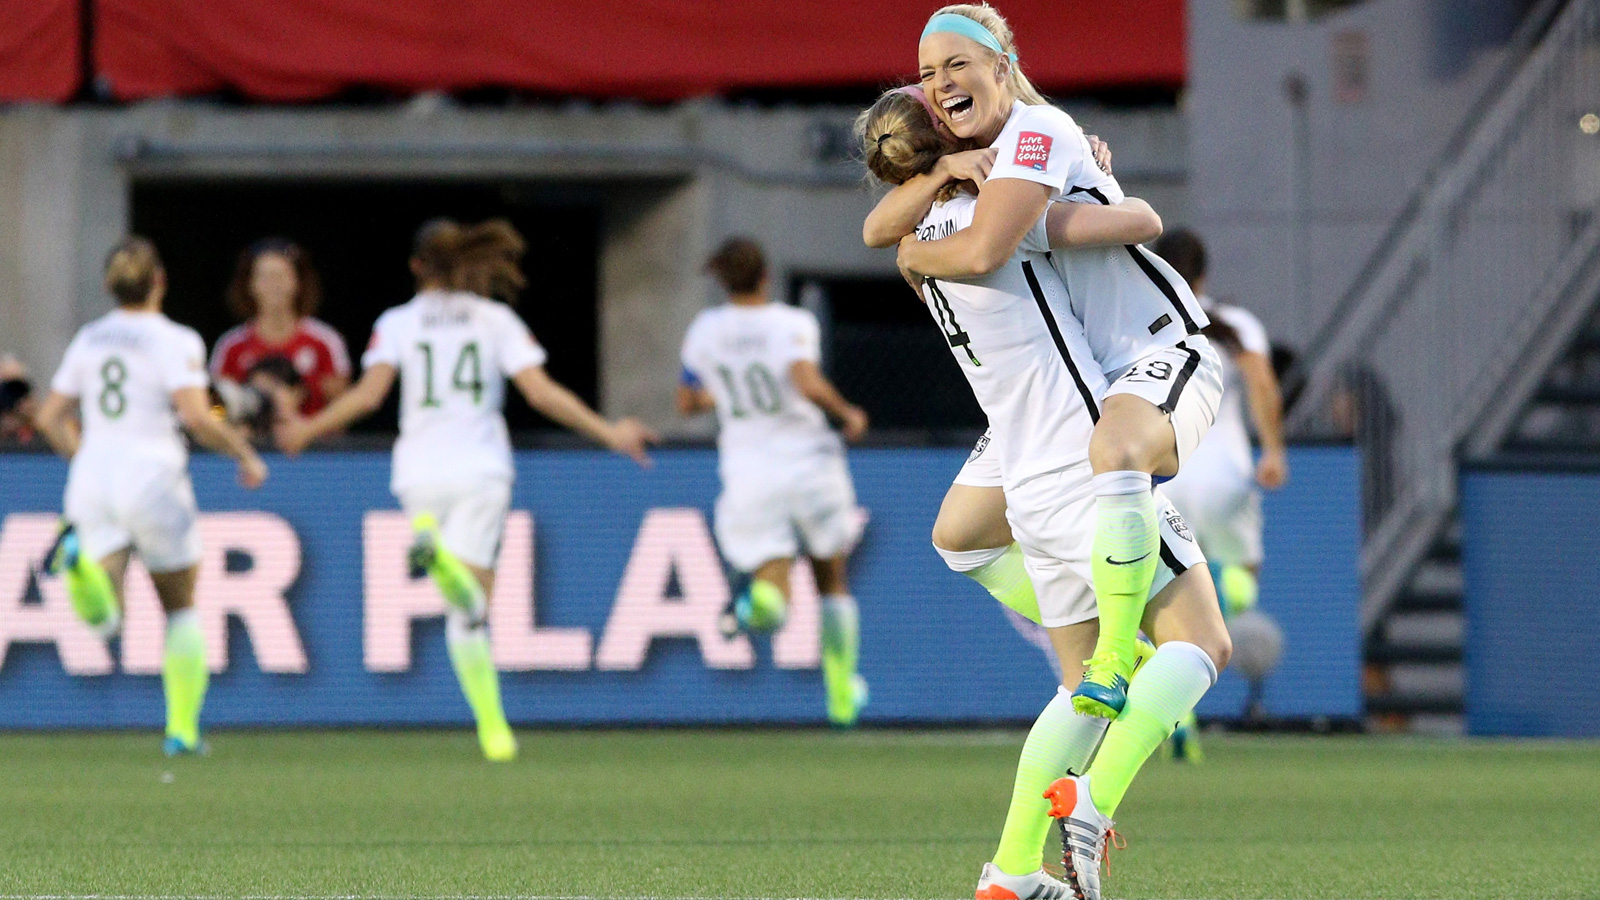 While Carli Lloyd (10) celebrates her goal in the distance, stalwart center backs Julie Johnston and Becky Sauerbrunn rejoice in the goal that put the USA into the semifinals of the Women's World Cup.